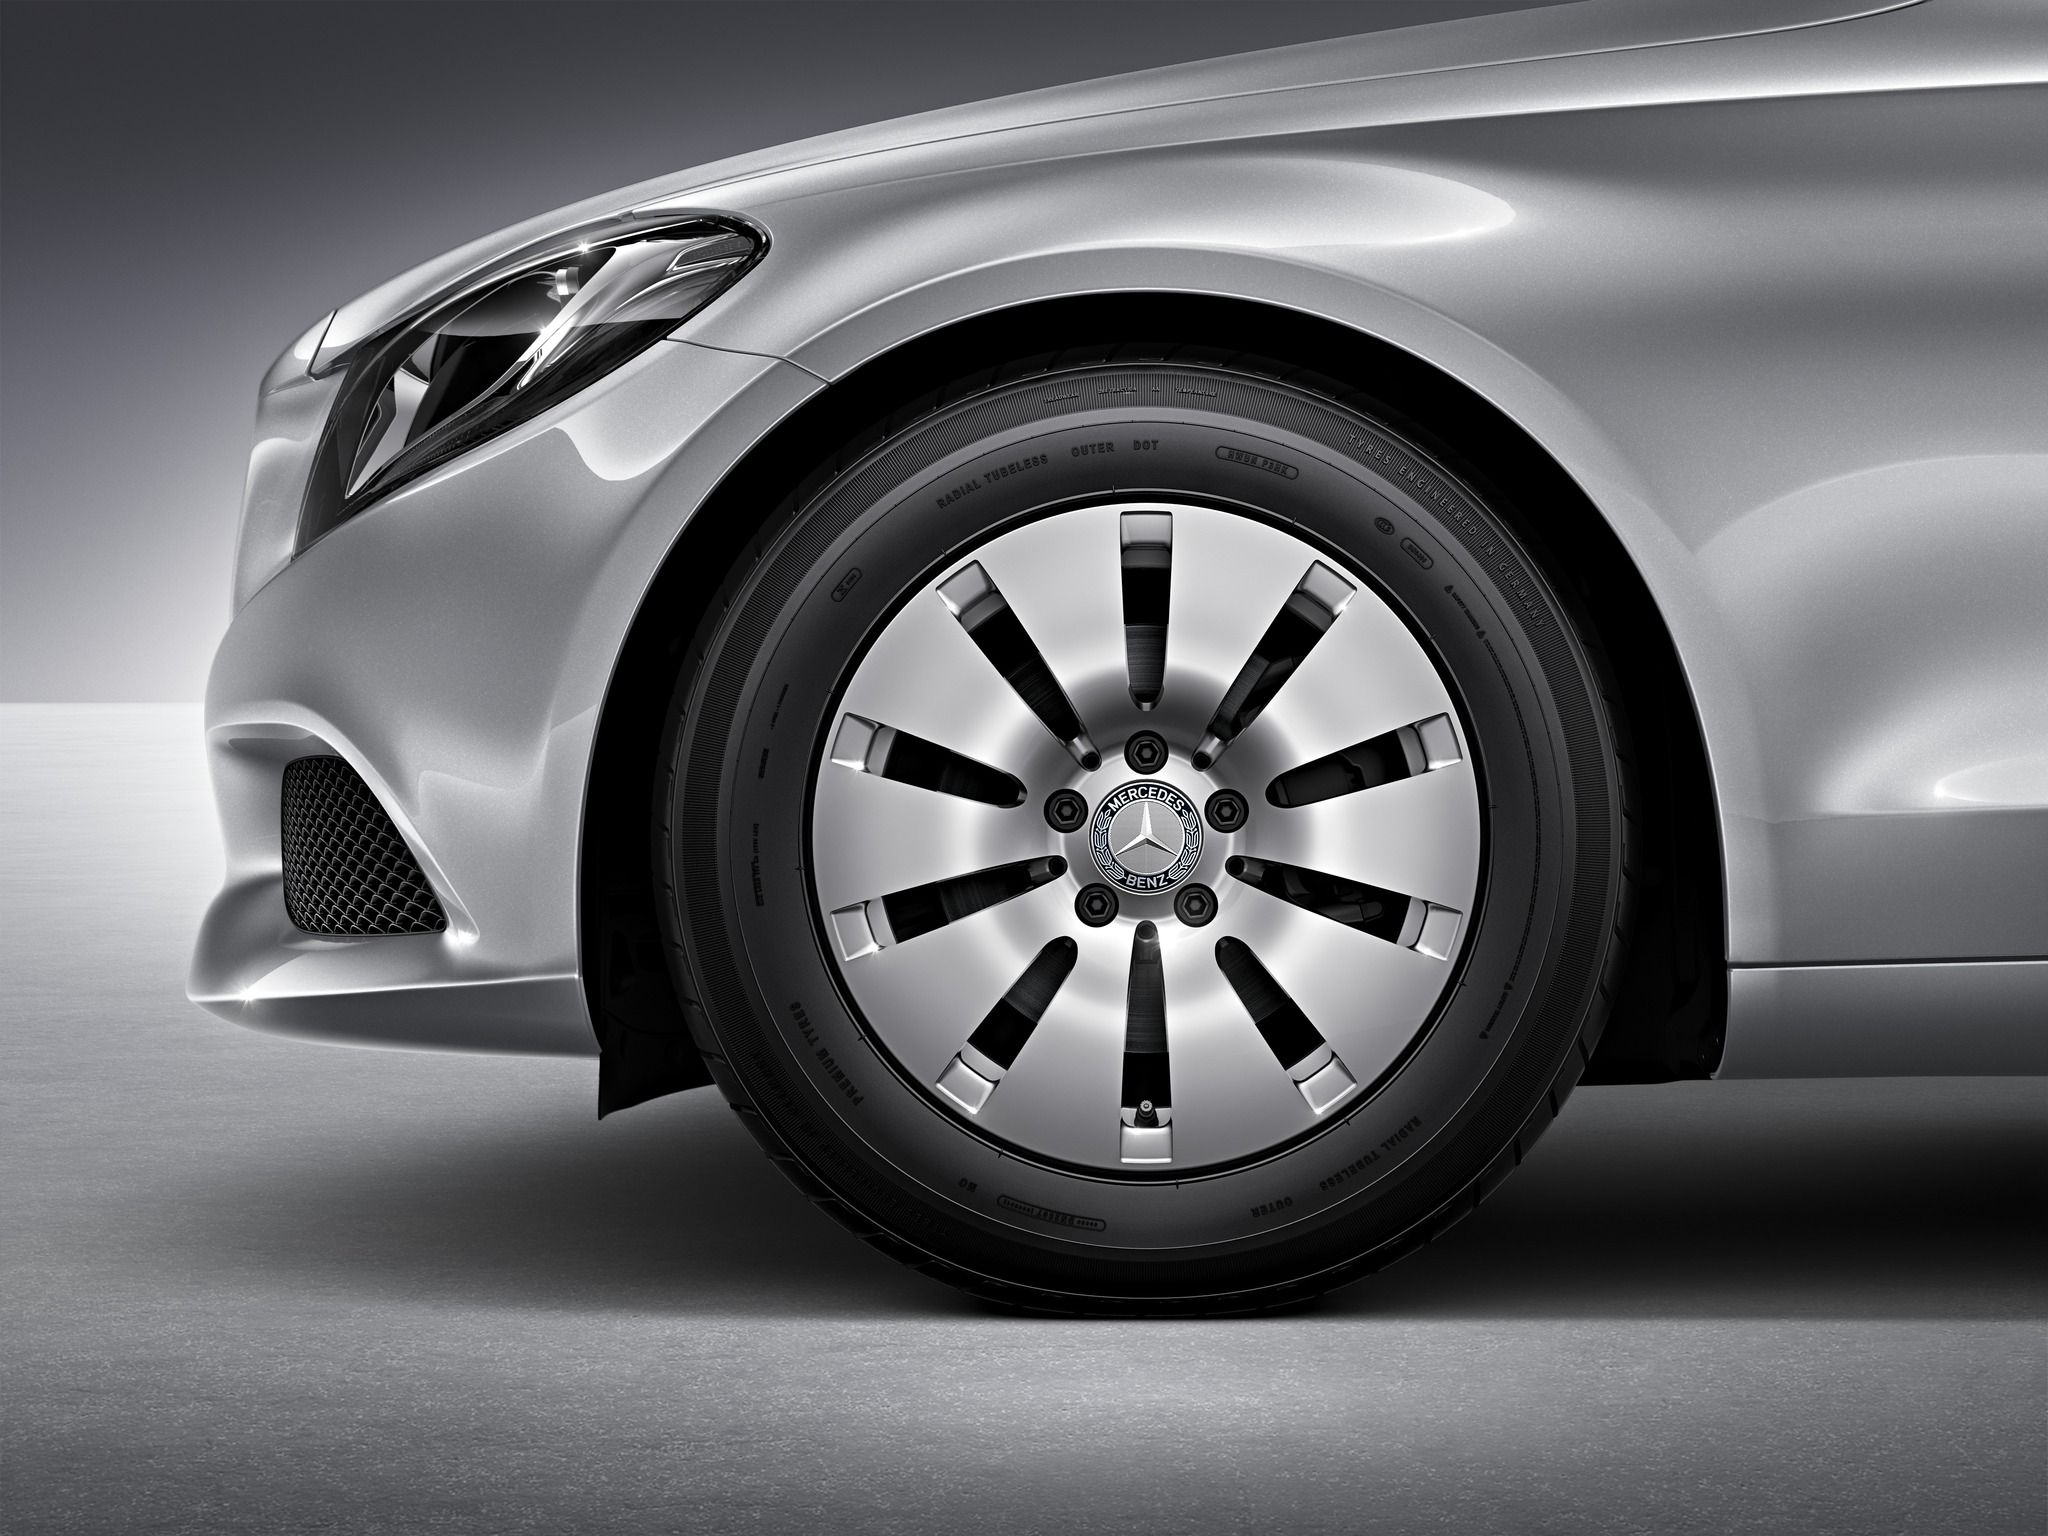 16 inch mercedes wheel sets The Impact of Mercedes Wheel Sets to Emission and Fuel Consumption